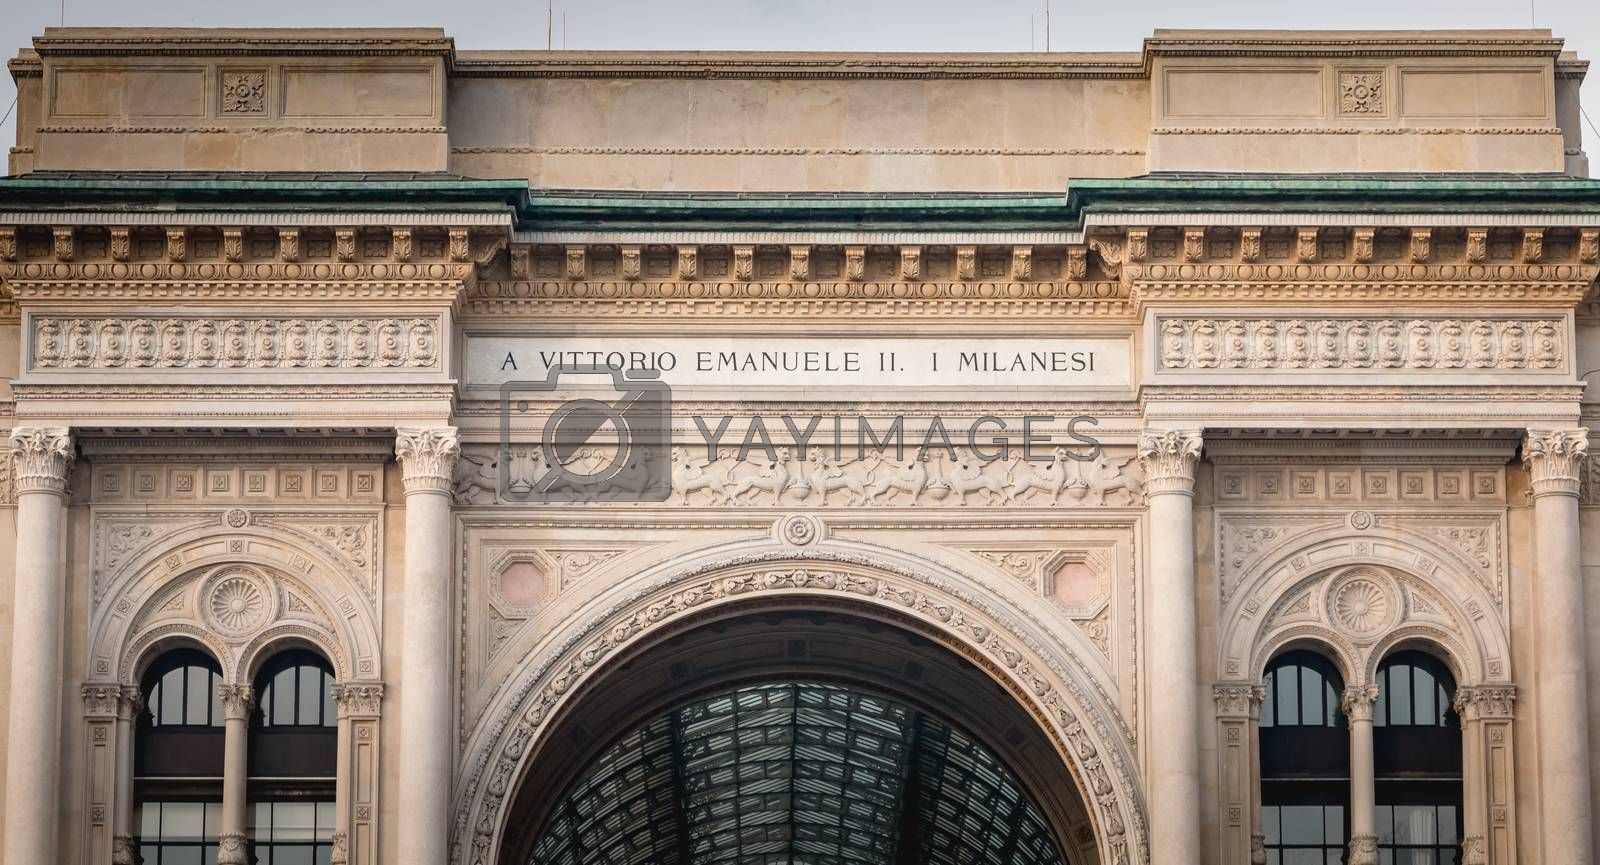 Milan, Italy - November 2, 2017: Architectural detail of Galleria Vittorio Emanuele II, a prestigious historic shopping gallery located between Milan s Duomo Square and La Scala. The gallery is due to the architect Giuseppe Mengoni